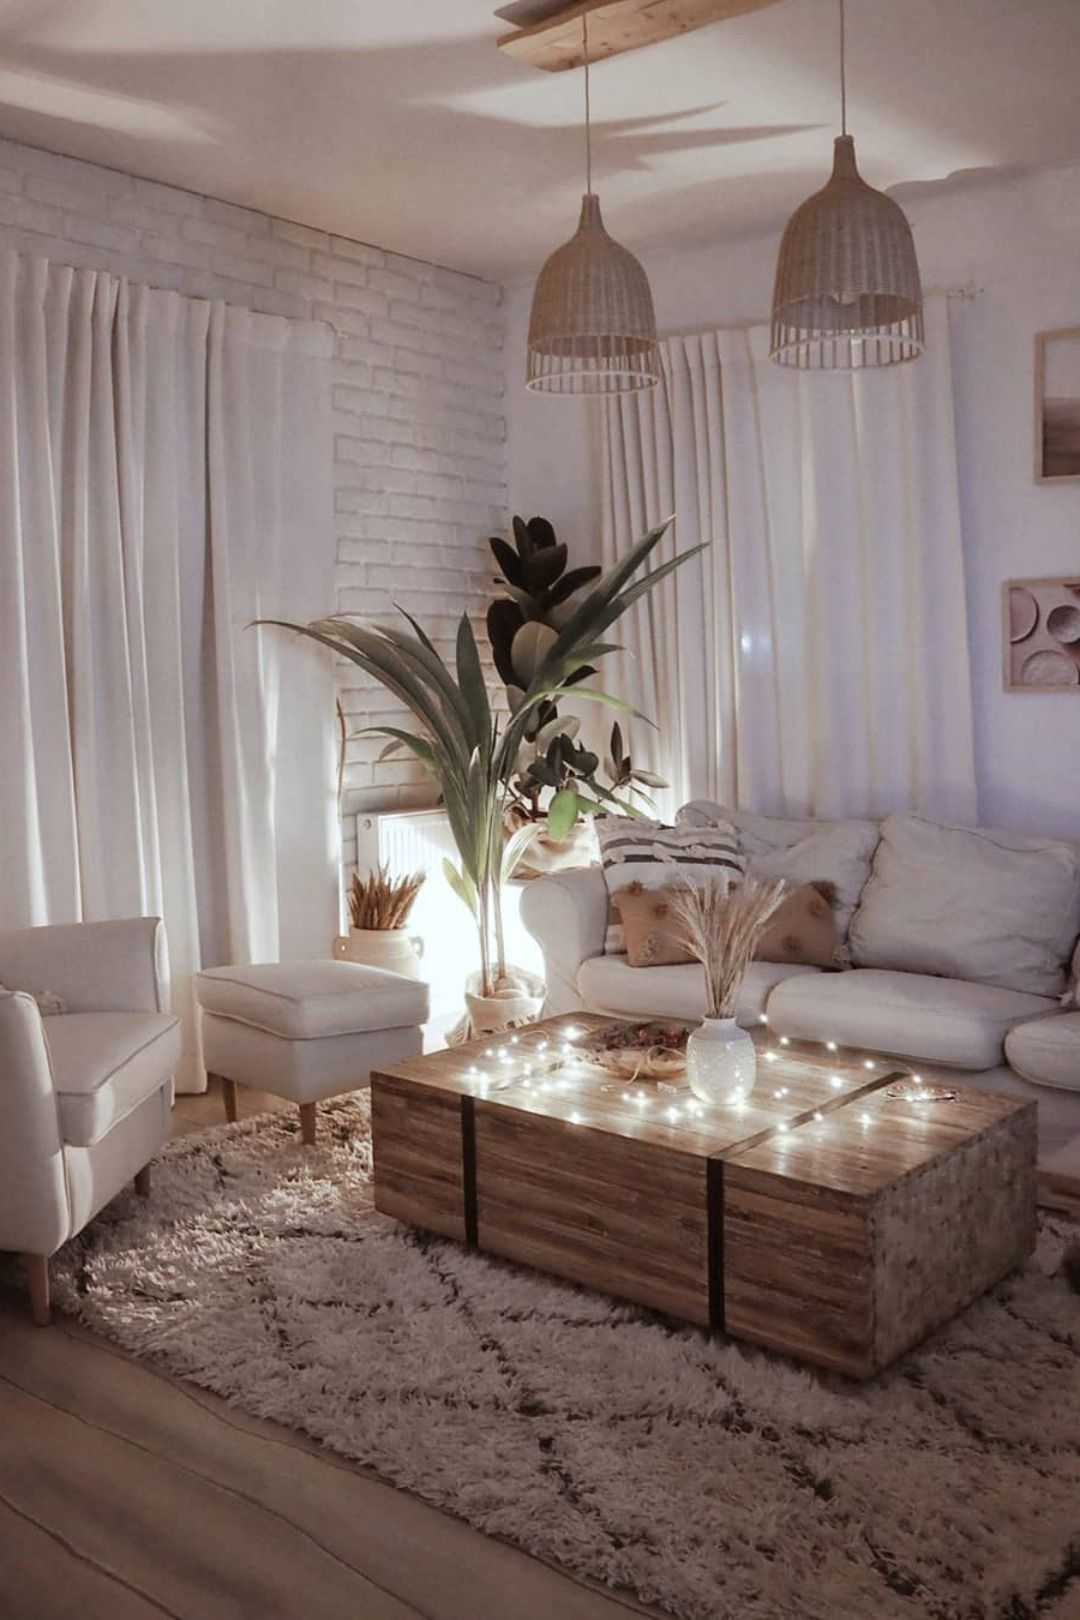 Solid Wooden Coffee Table - rustic living room idea - sitting area -   17 room decor Cute couch ideas